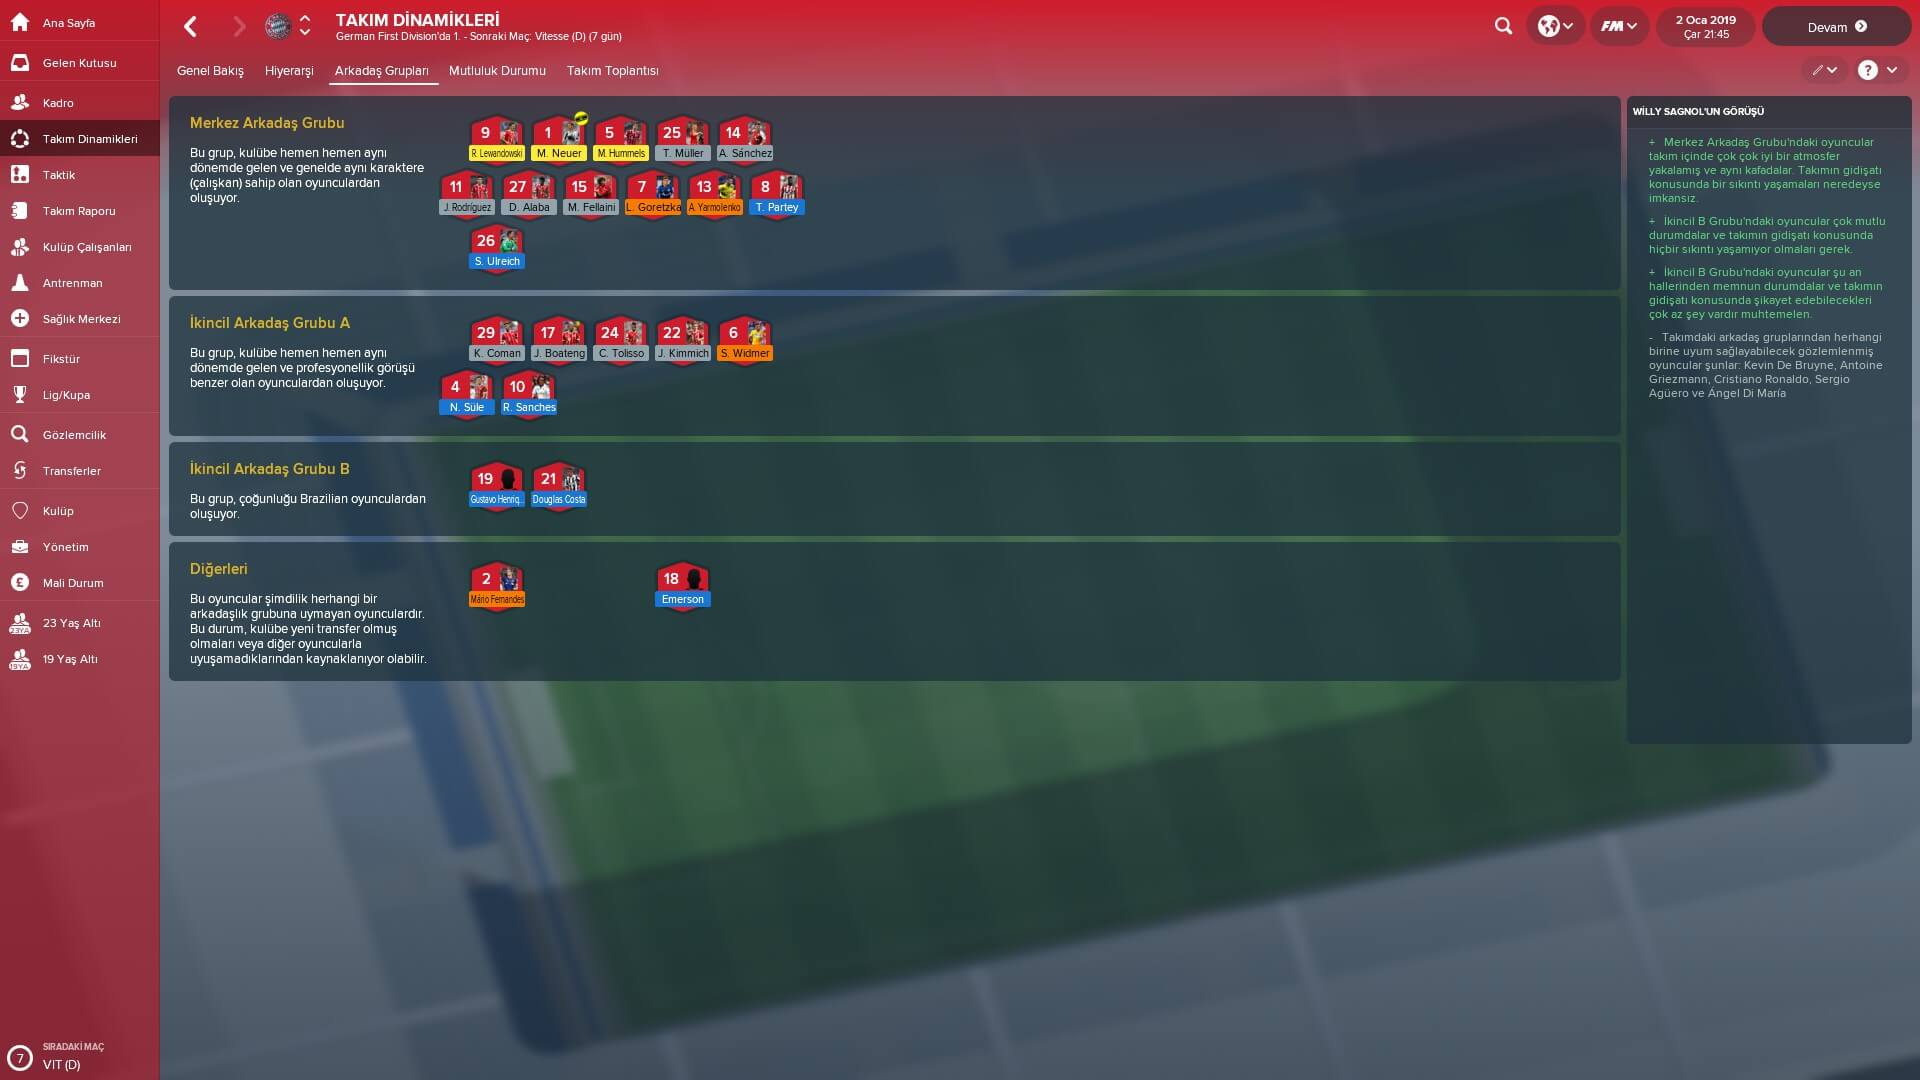 Football Manager 2018 İncelemesi